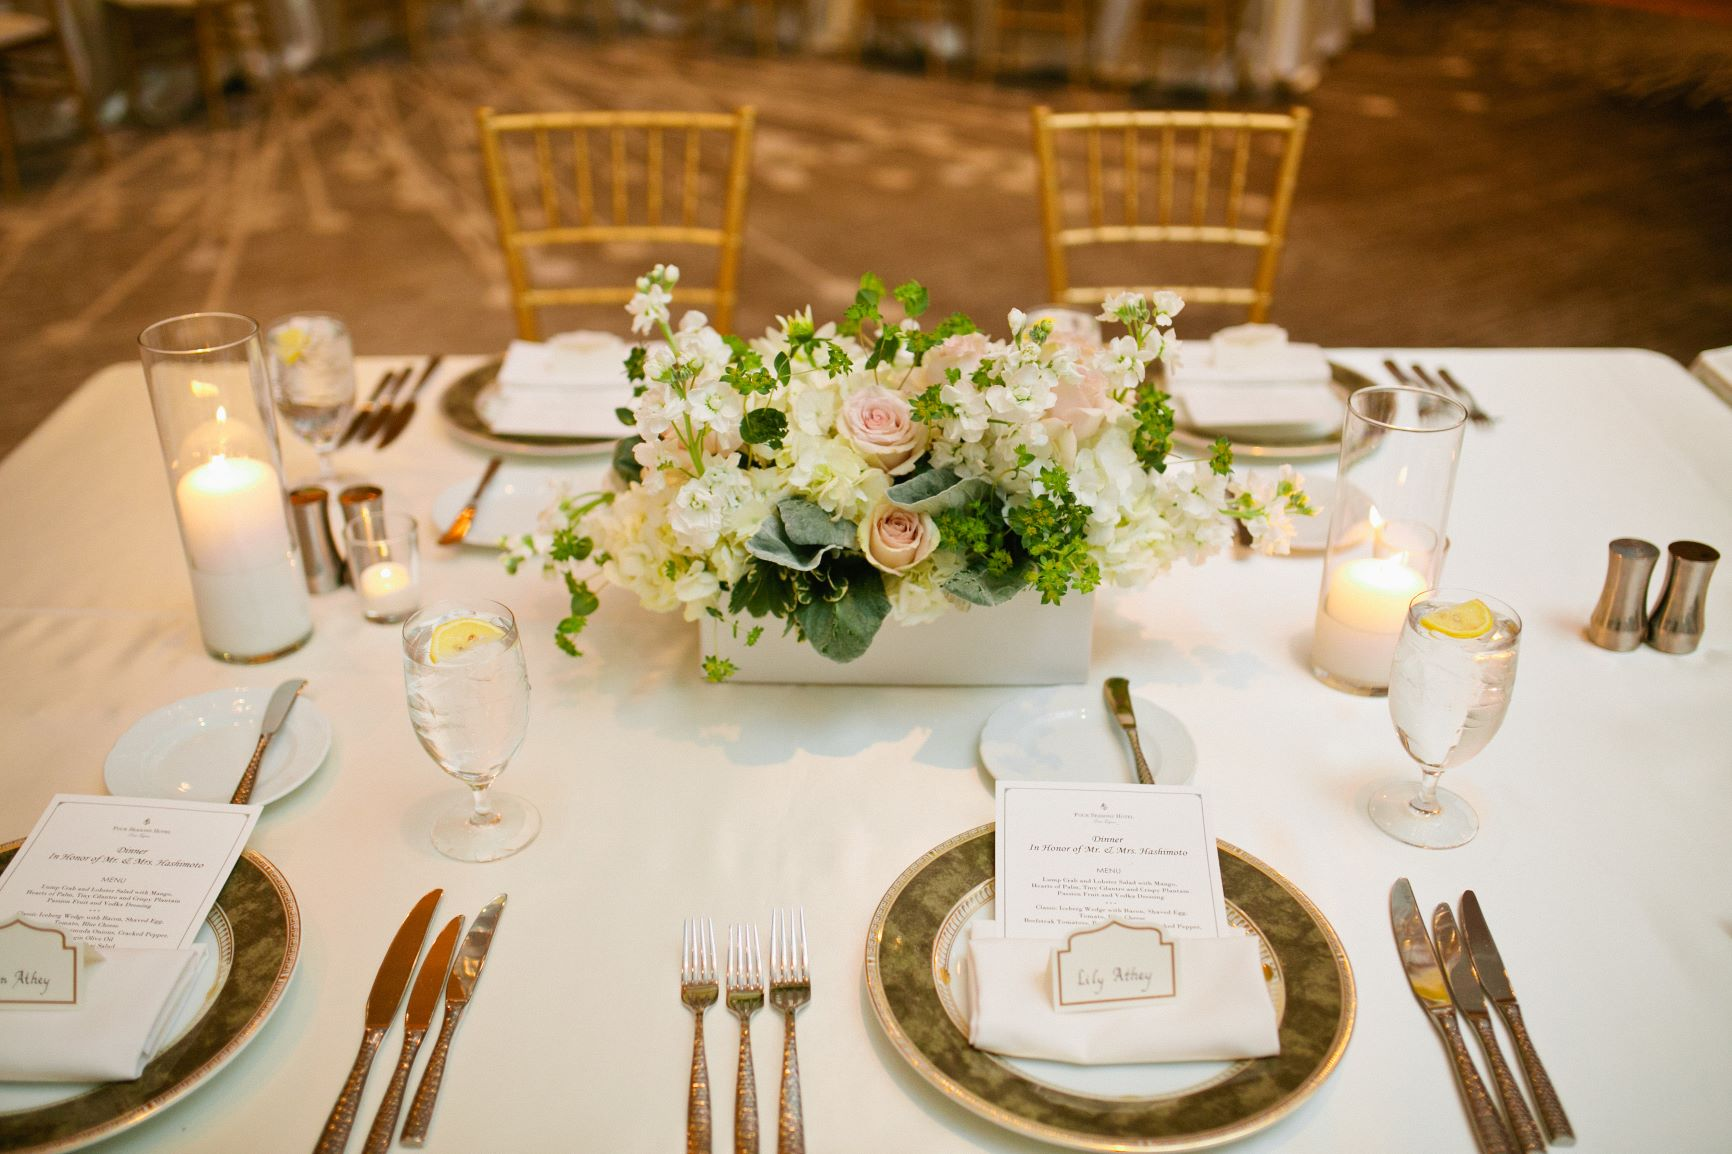 Wedding centerpiece with white flowers